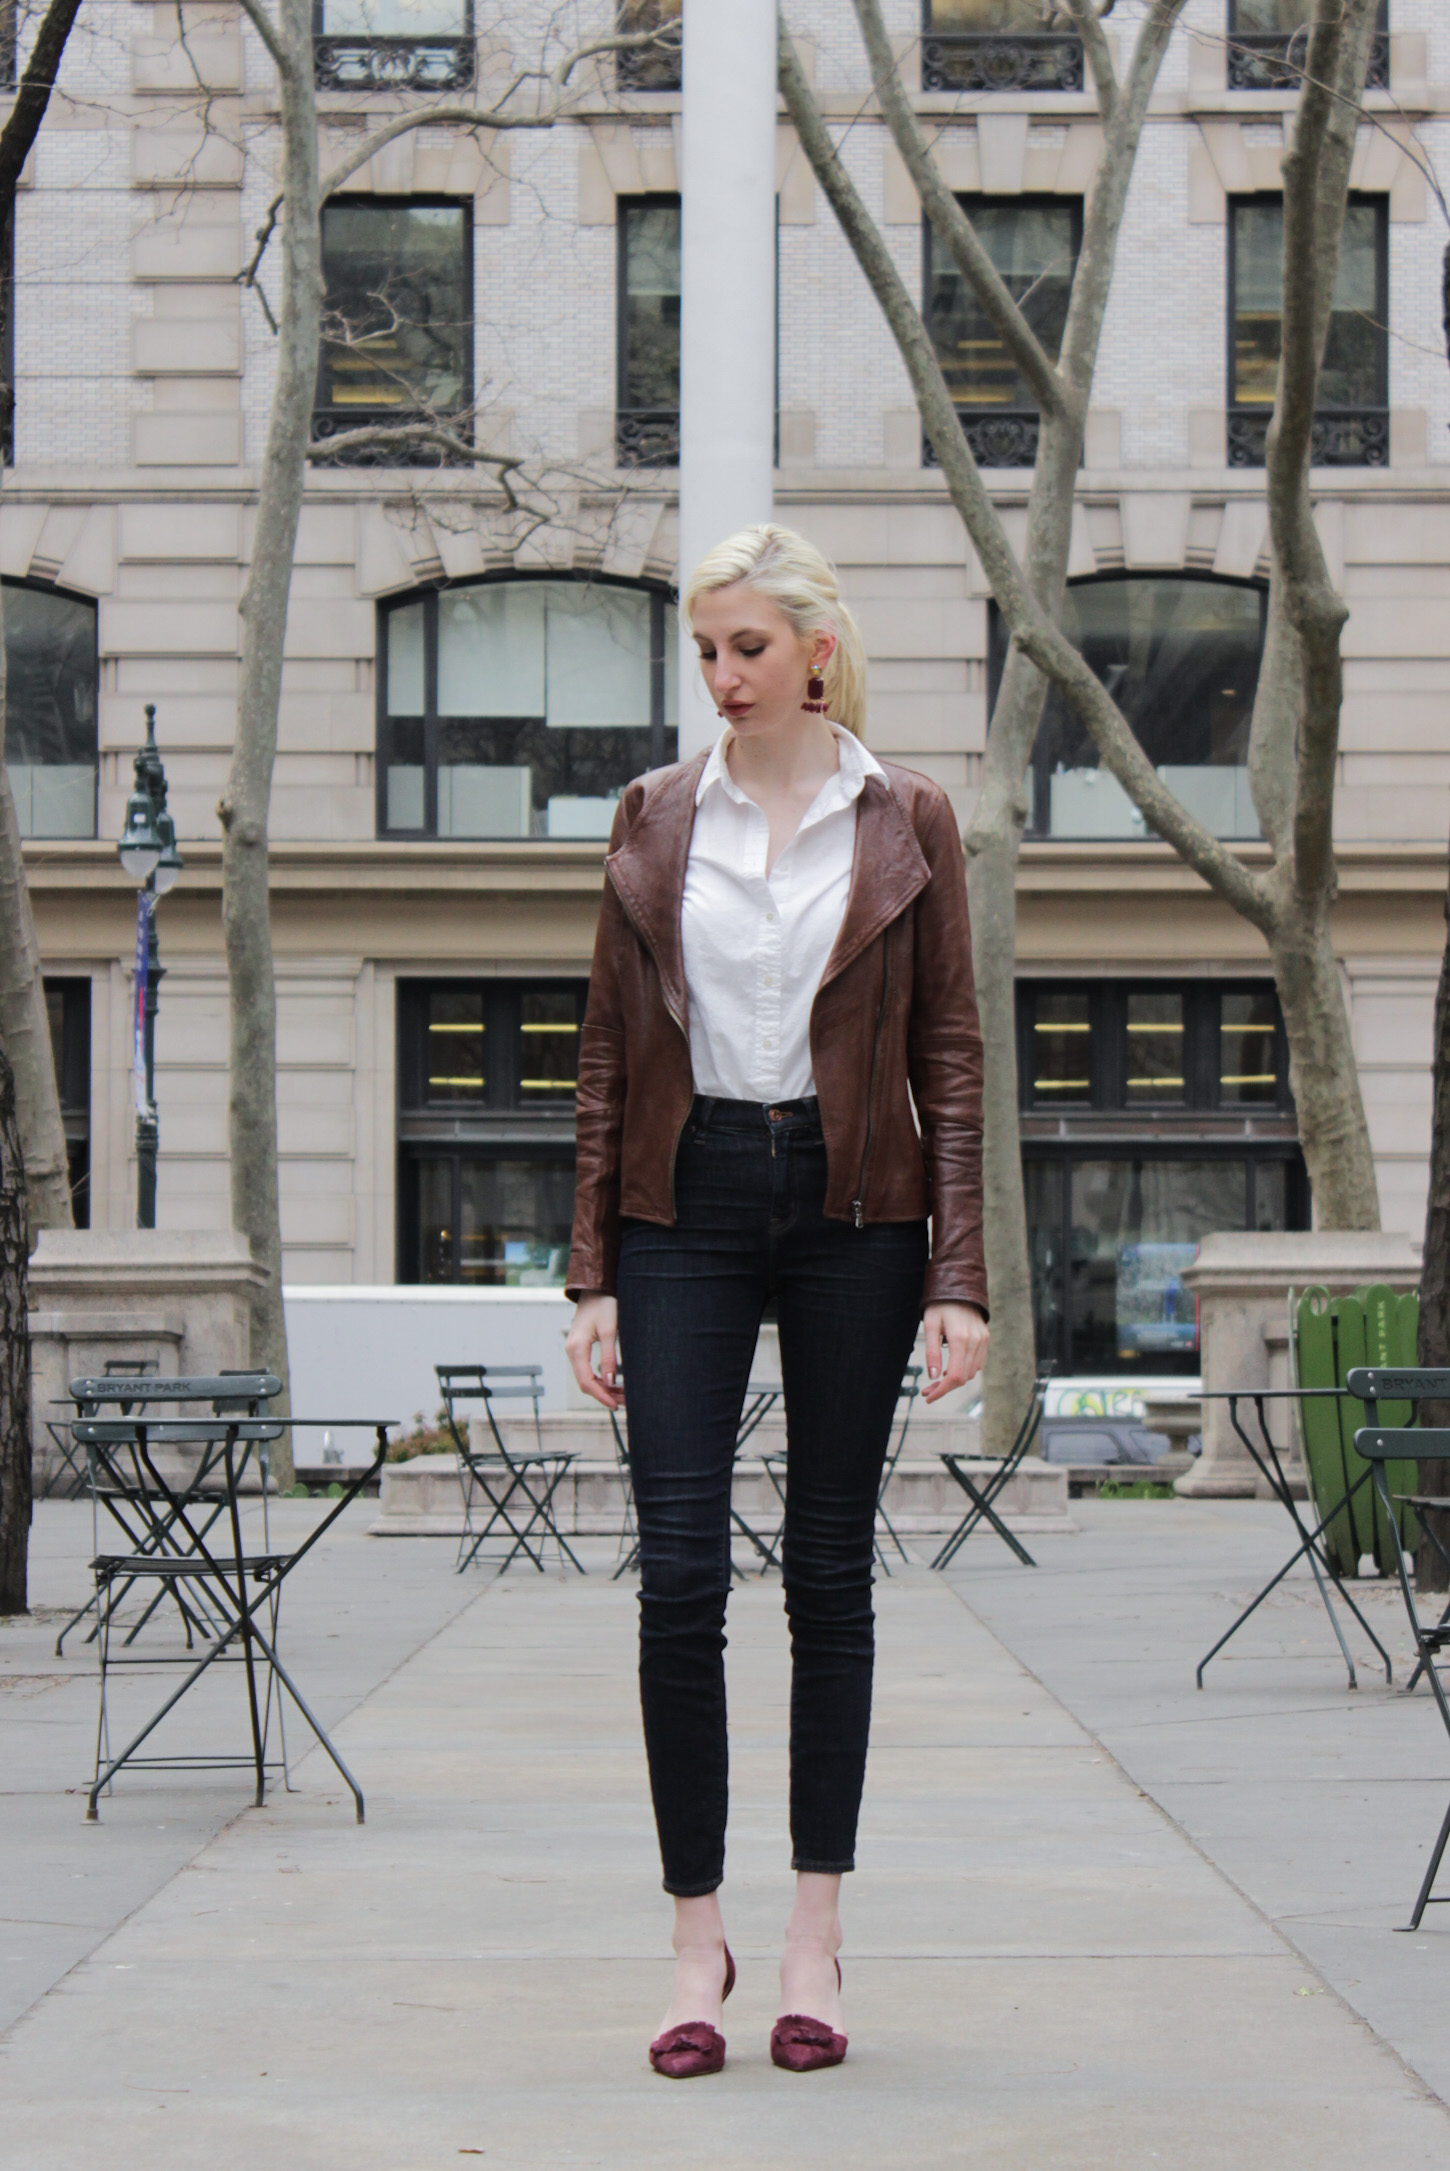 J.Crew button down, lookout high rise jeans, burgundy d'orsay fringe heels